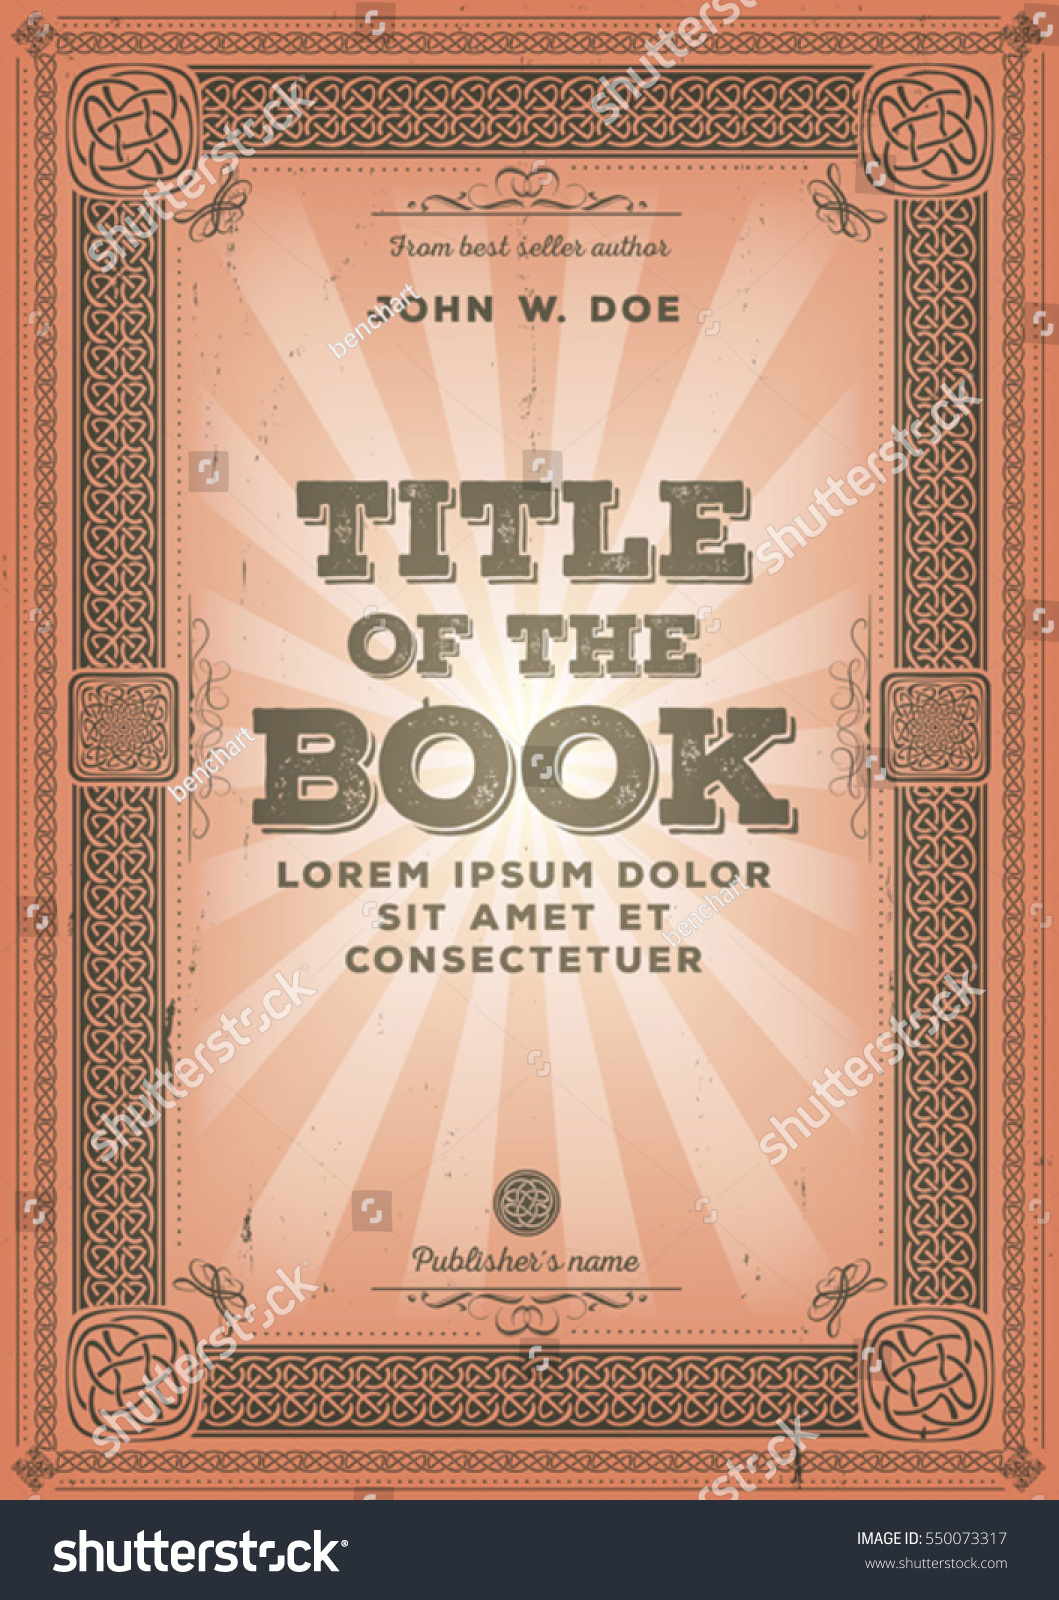 Vintage Book Cover Illustration : Illustration vintage old retro classical book stock vector